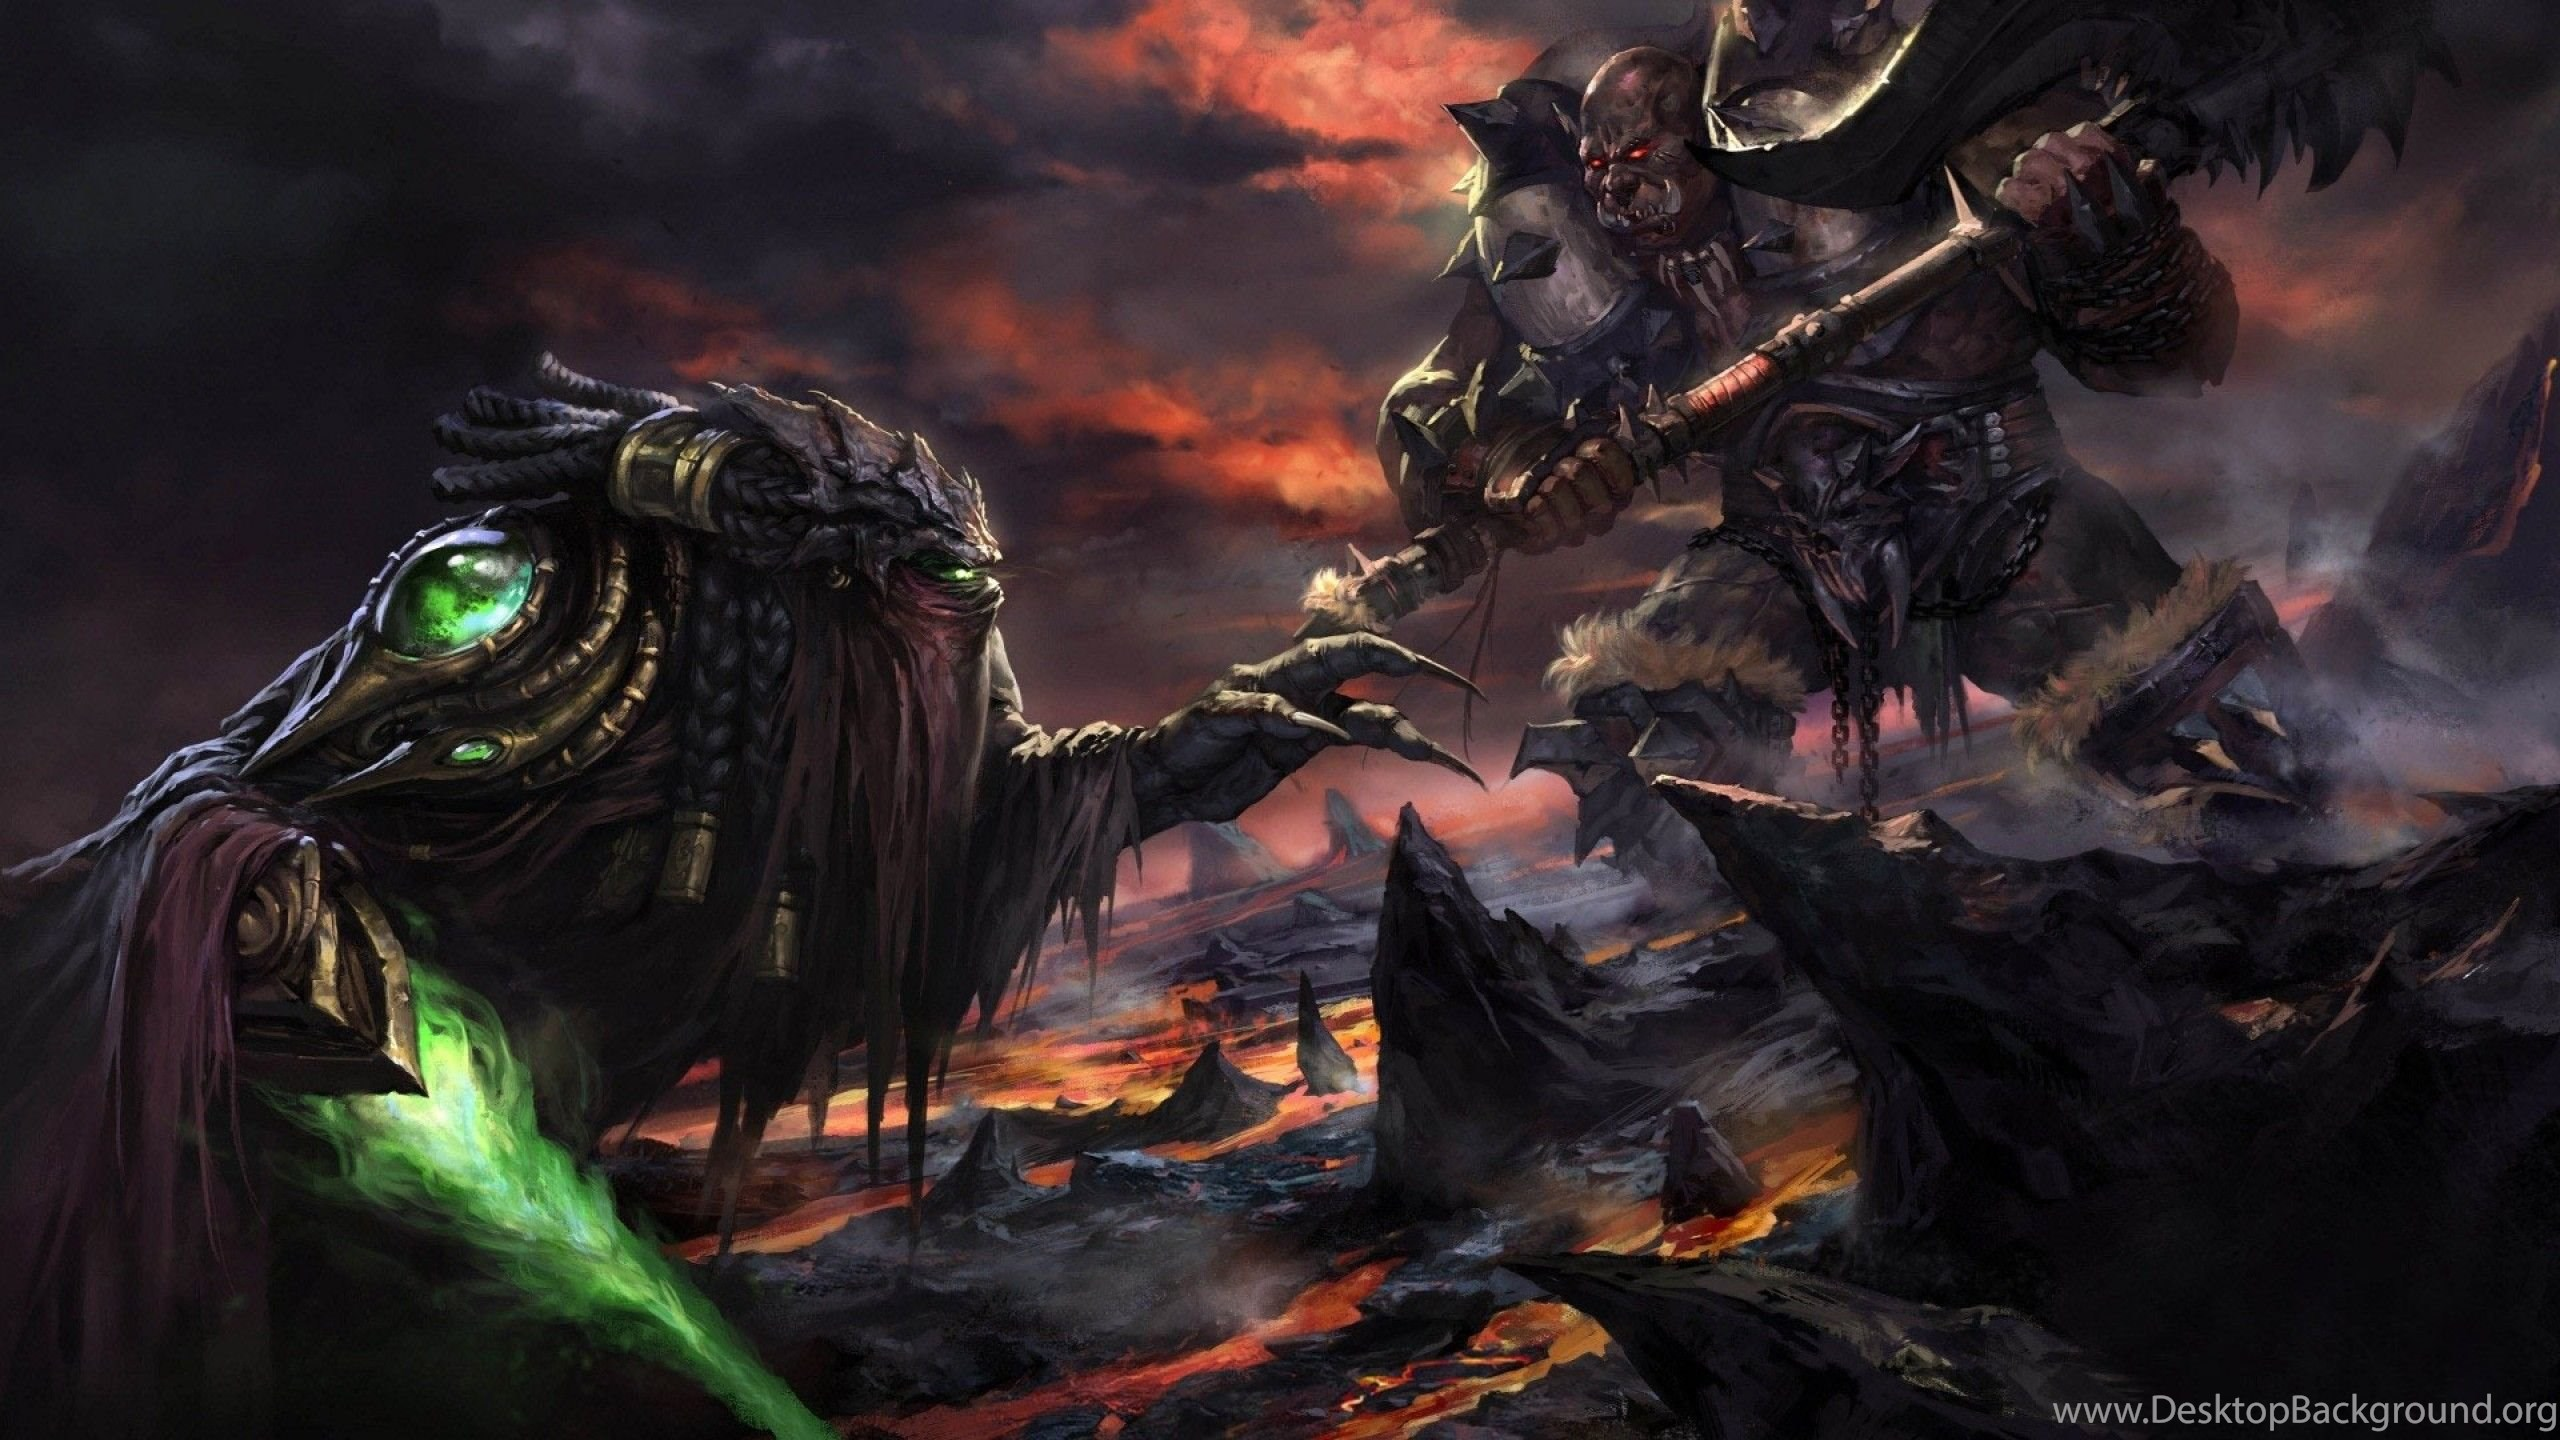 World Of Warcraft Hd Wallpapers 1920x1080 2560x1440 Wallpapers